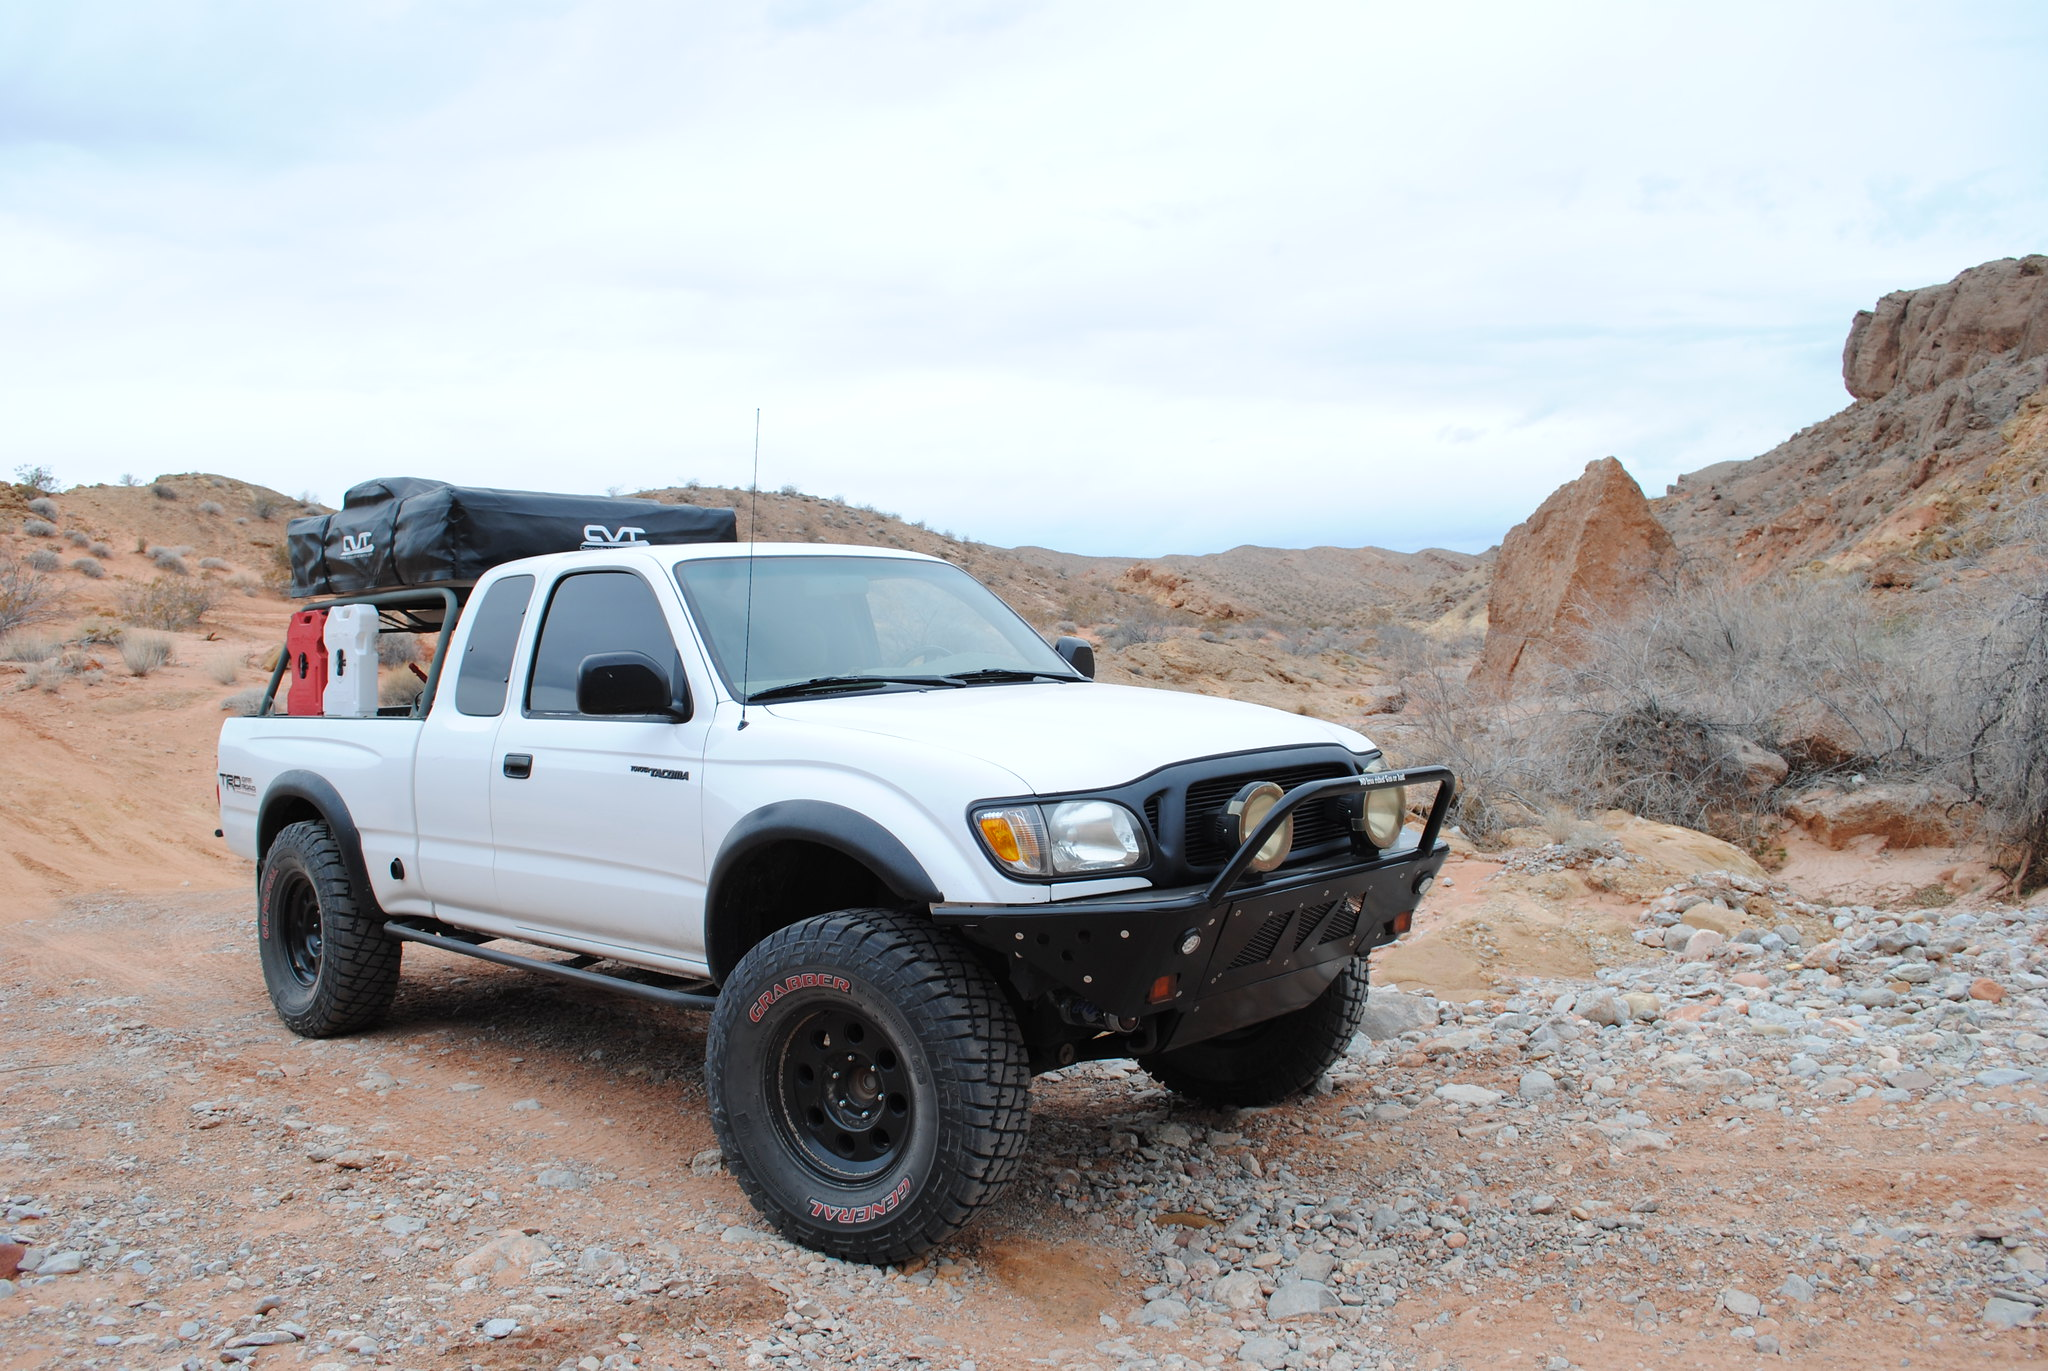 Official 2wd 1st gen Tacoma picture thread | Expedition Portal